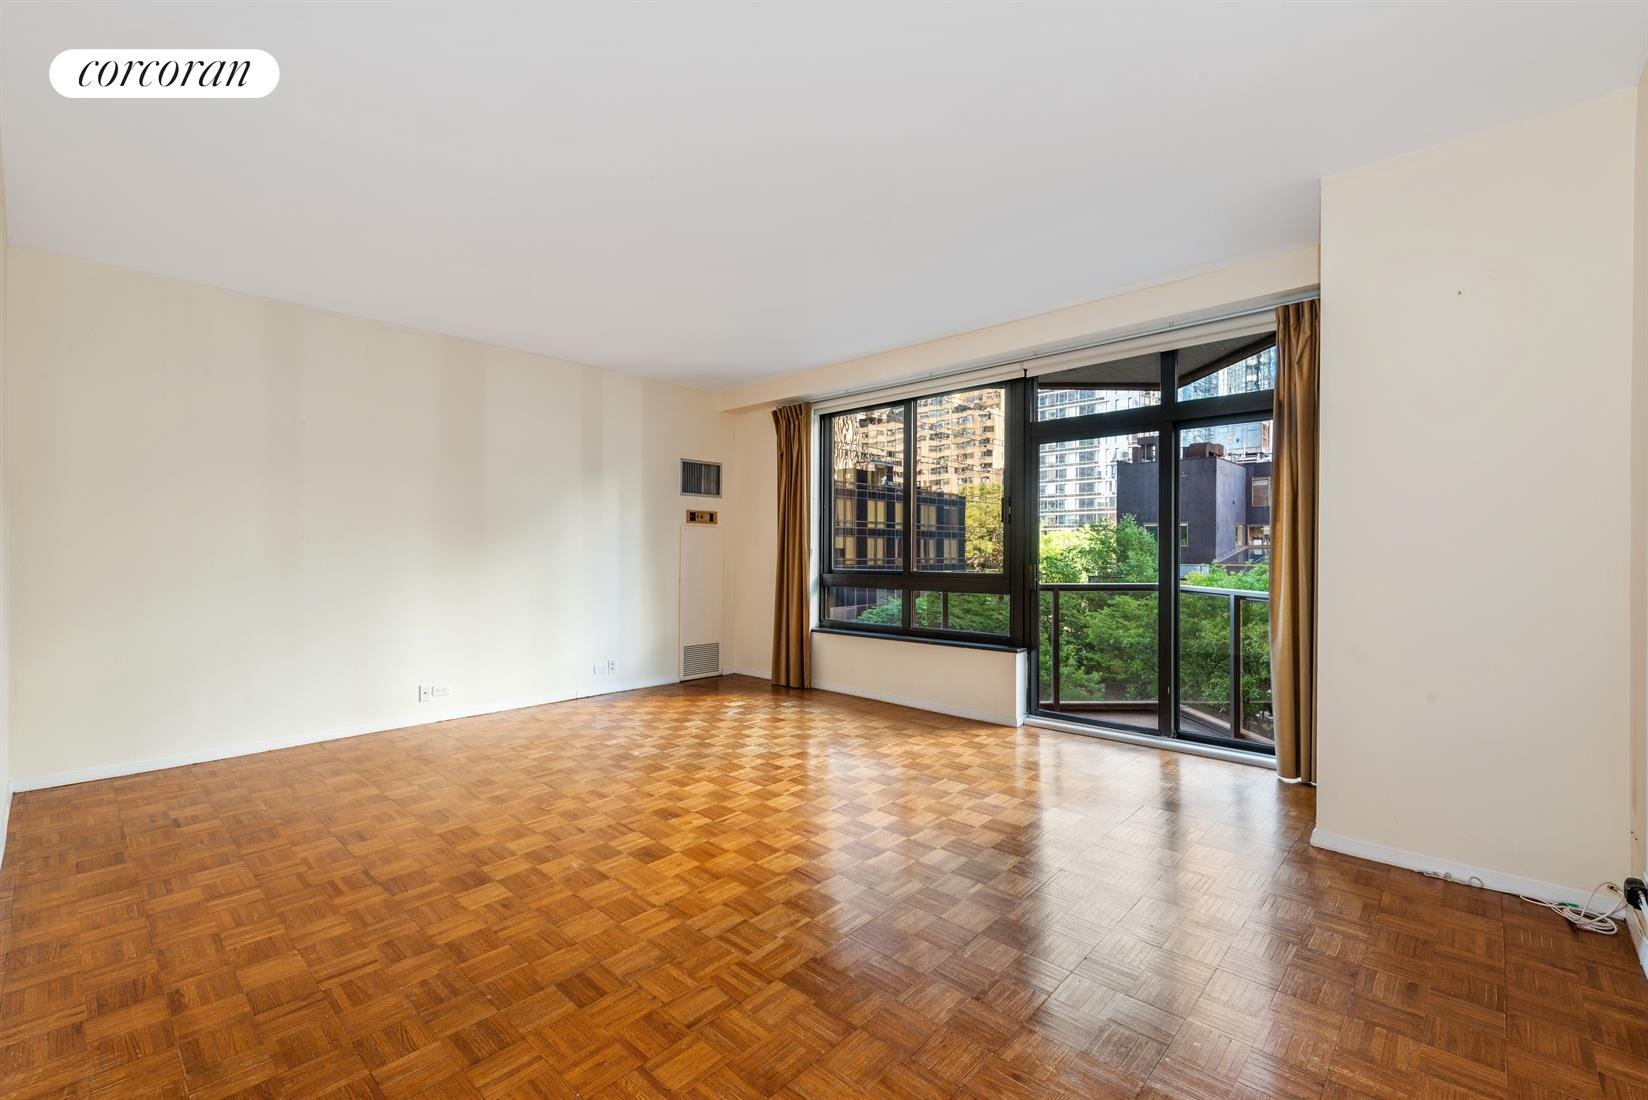 Sunlit and spacious 1 bedroom with private balcony for rent at 100 United Nations Plaza.This south-facing unit has a great layout and offers 9' ceilings, oversized windows, great light and a balcony off of the living room. The large living room will comfortably accommodate separate living and dining areas and enjoys lush treetop and city views. The galley kitchen has clean off white cabinetry and countertops, ceramic tile flooring and full size appliances including a dishwasher, Sub-Zero fridge, built-in microwave and gas range. The king-size bedroom has a large closet and the marble bathroom features a Jacuzzi bathtub. Located on East 48th Street and First Avenue, 100 United Nations Plaza is a white-glove, full service condominium in Manhattan's Turtle Bay neighborhood. Greeting residents with beautifully landscaped gardens and waterfalls, this impeccably run building offers a 24-hour doorman, valet and concierge service, on-site management office, renovated lobby and resident's lounge, common laundry room, fitness center and direct access to a 24-hour attended parking garage. Conveniently located to transportation and many great shops and restaurants. Showing by appointment only. Some images have been virtually enhanced.